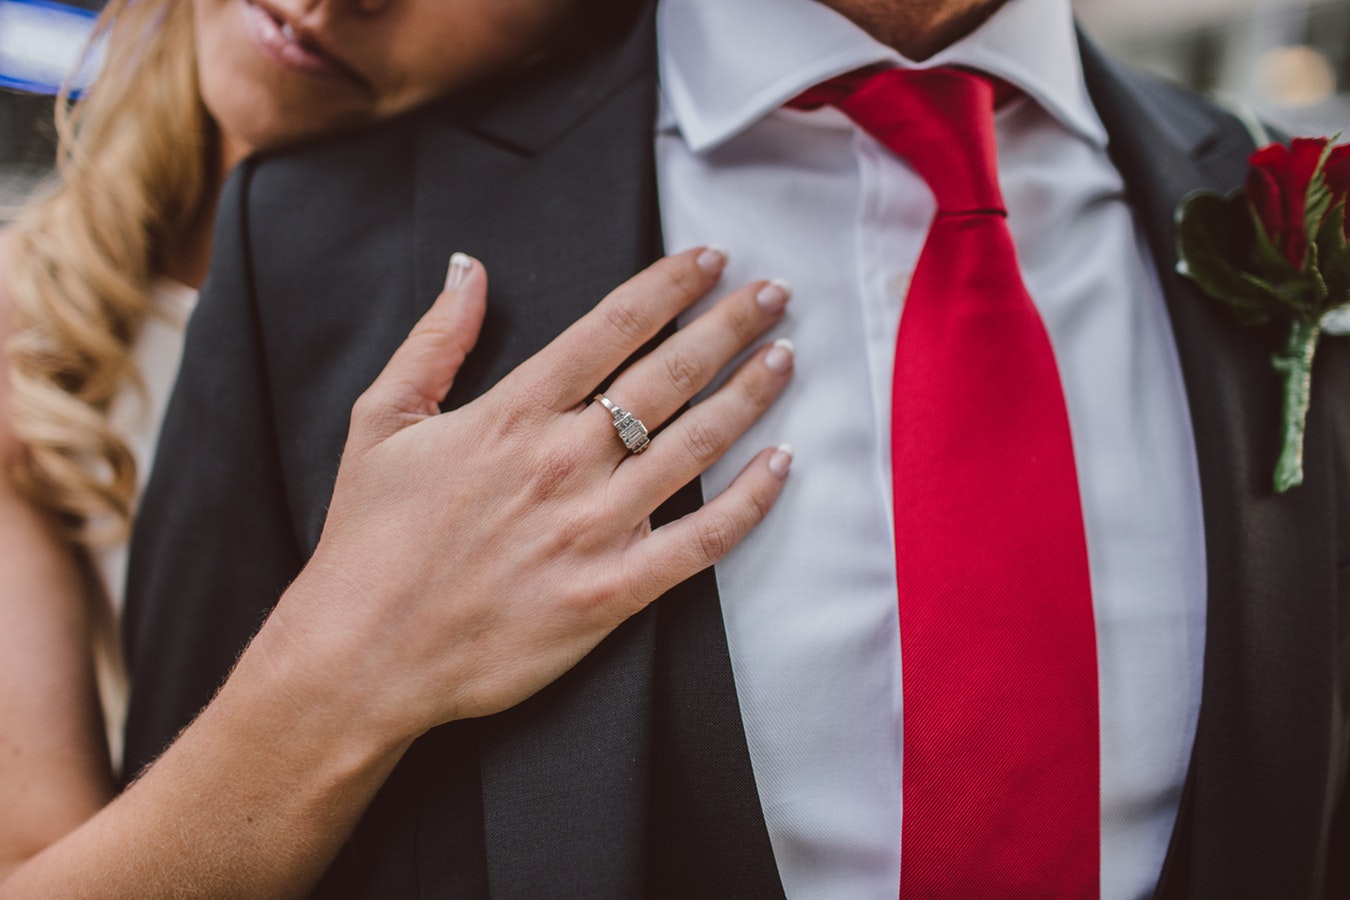 "Red-""Power-Ties- 27 Things Male Realtors Should Never, Ever, Wear to Work"